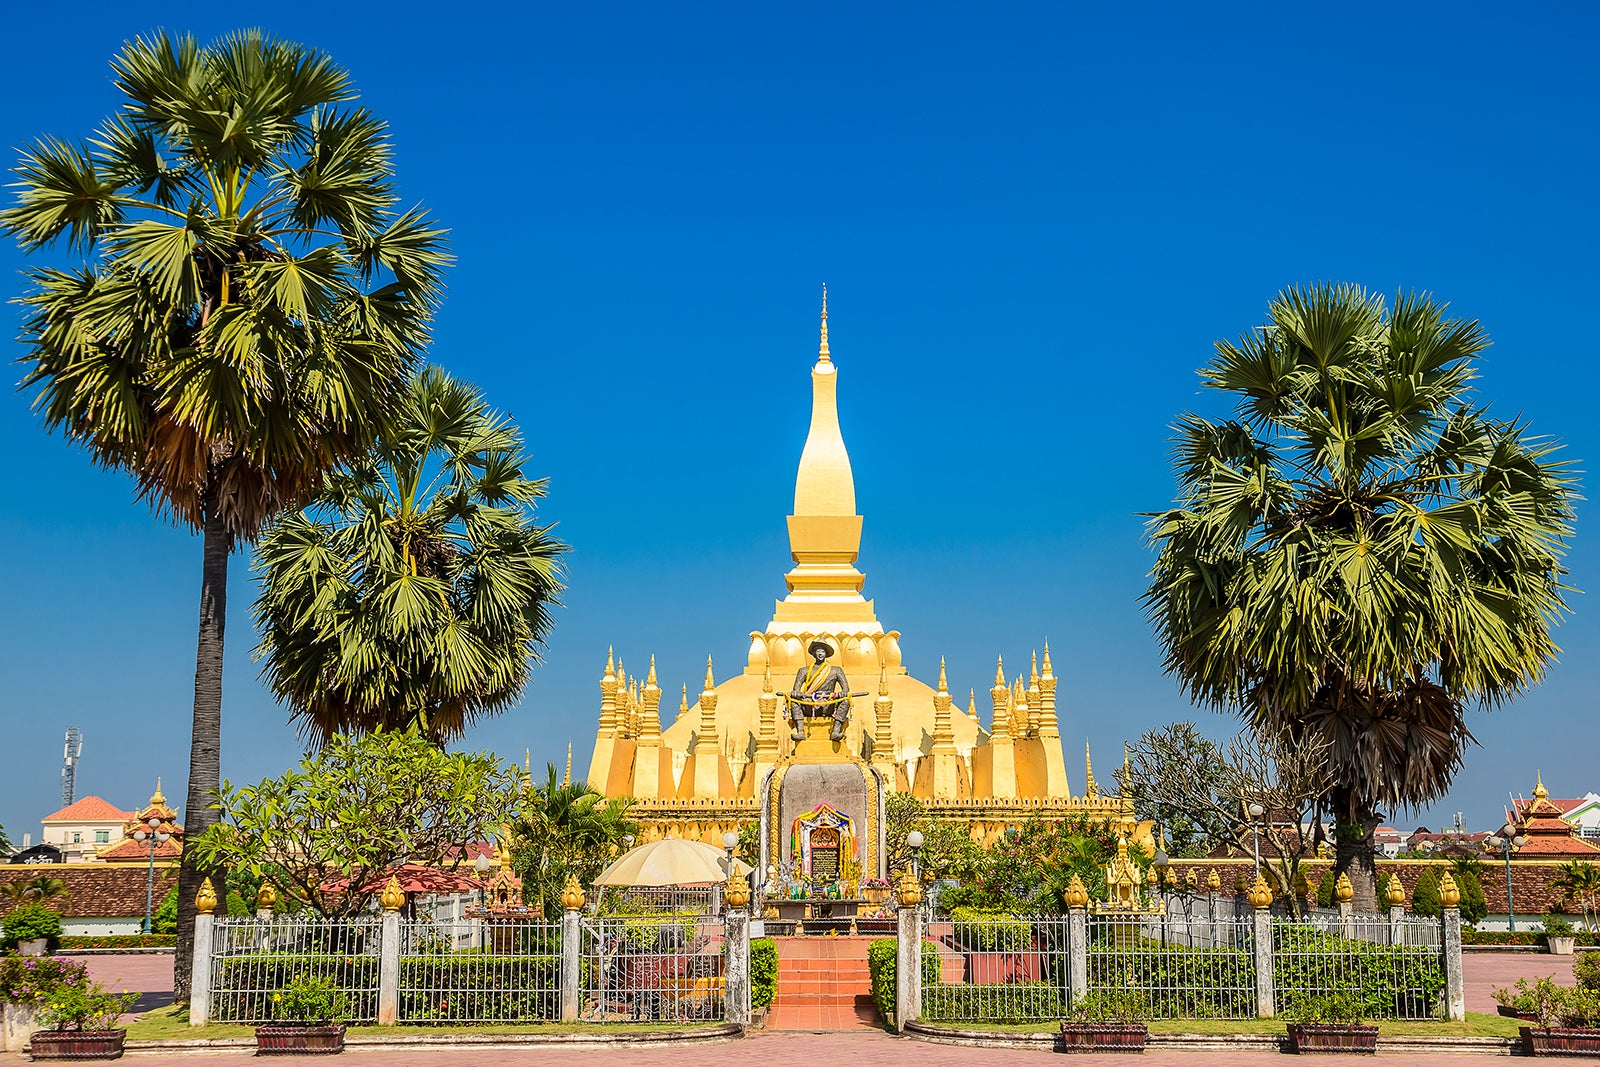 14 Best Things to Do in Vientiane - What is Vientiane Most